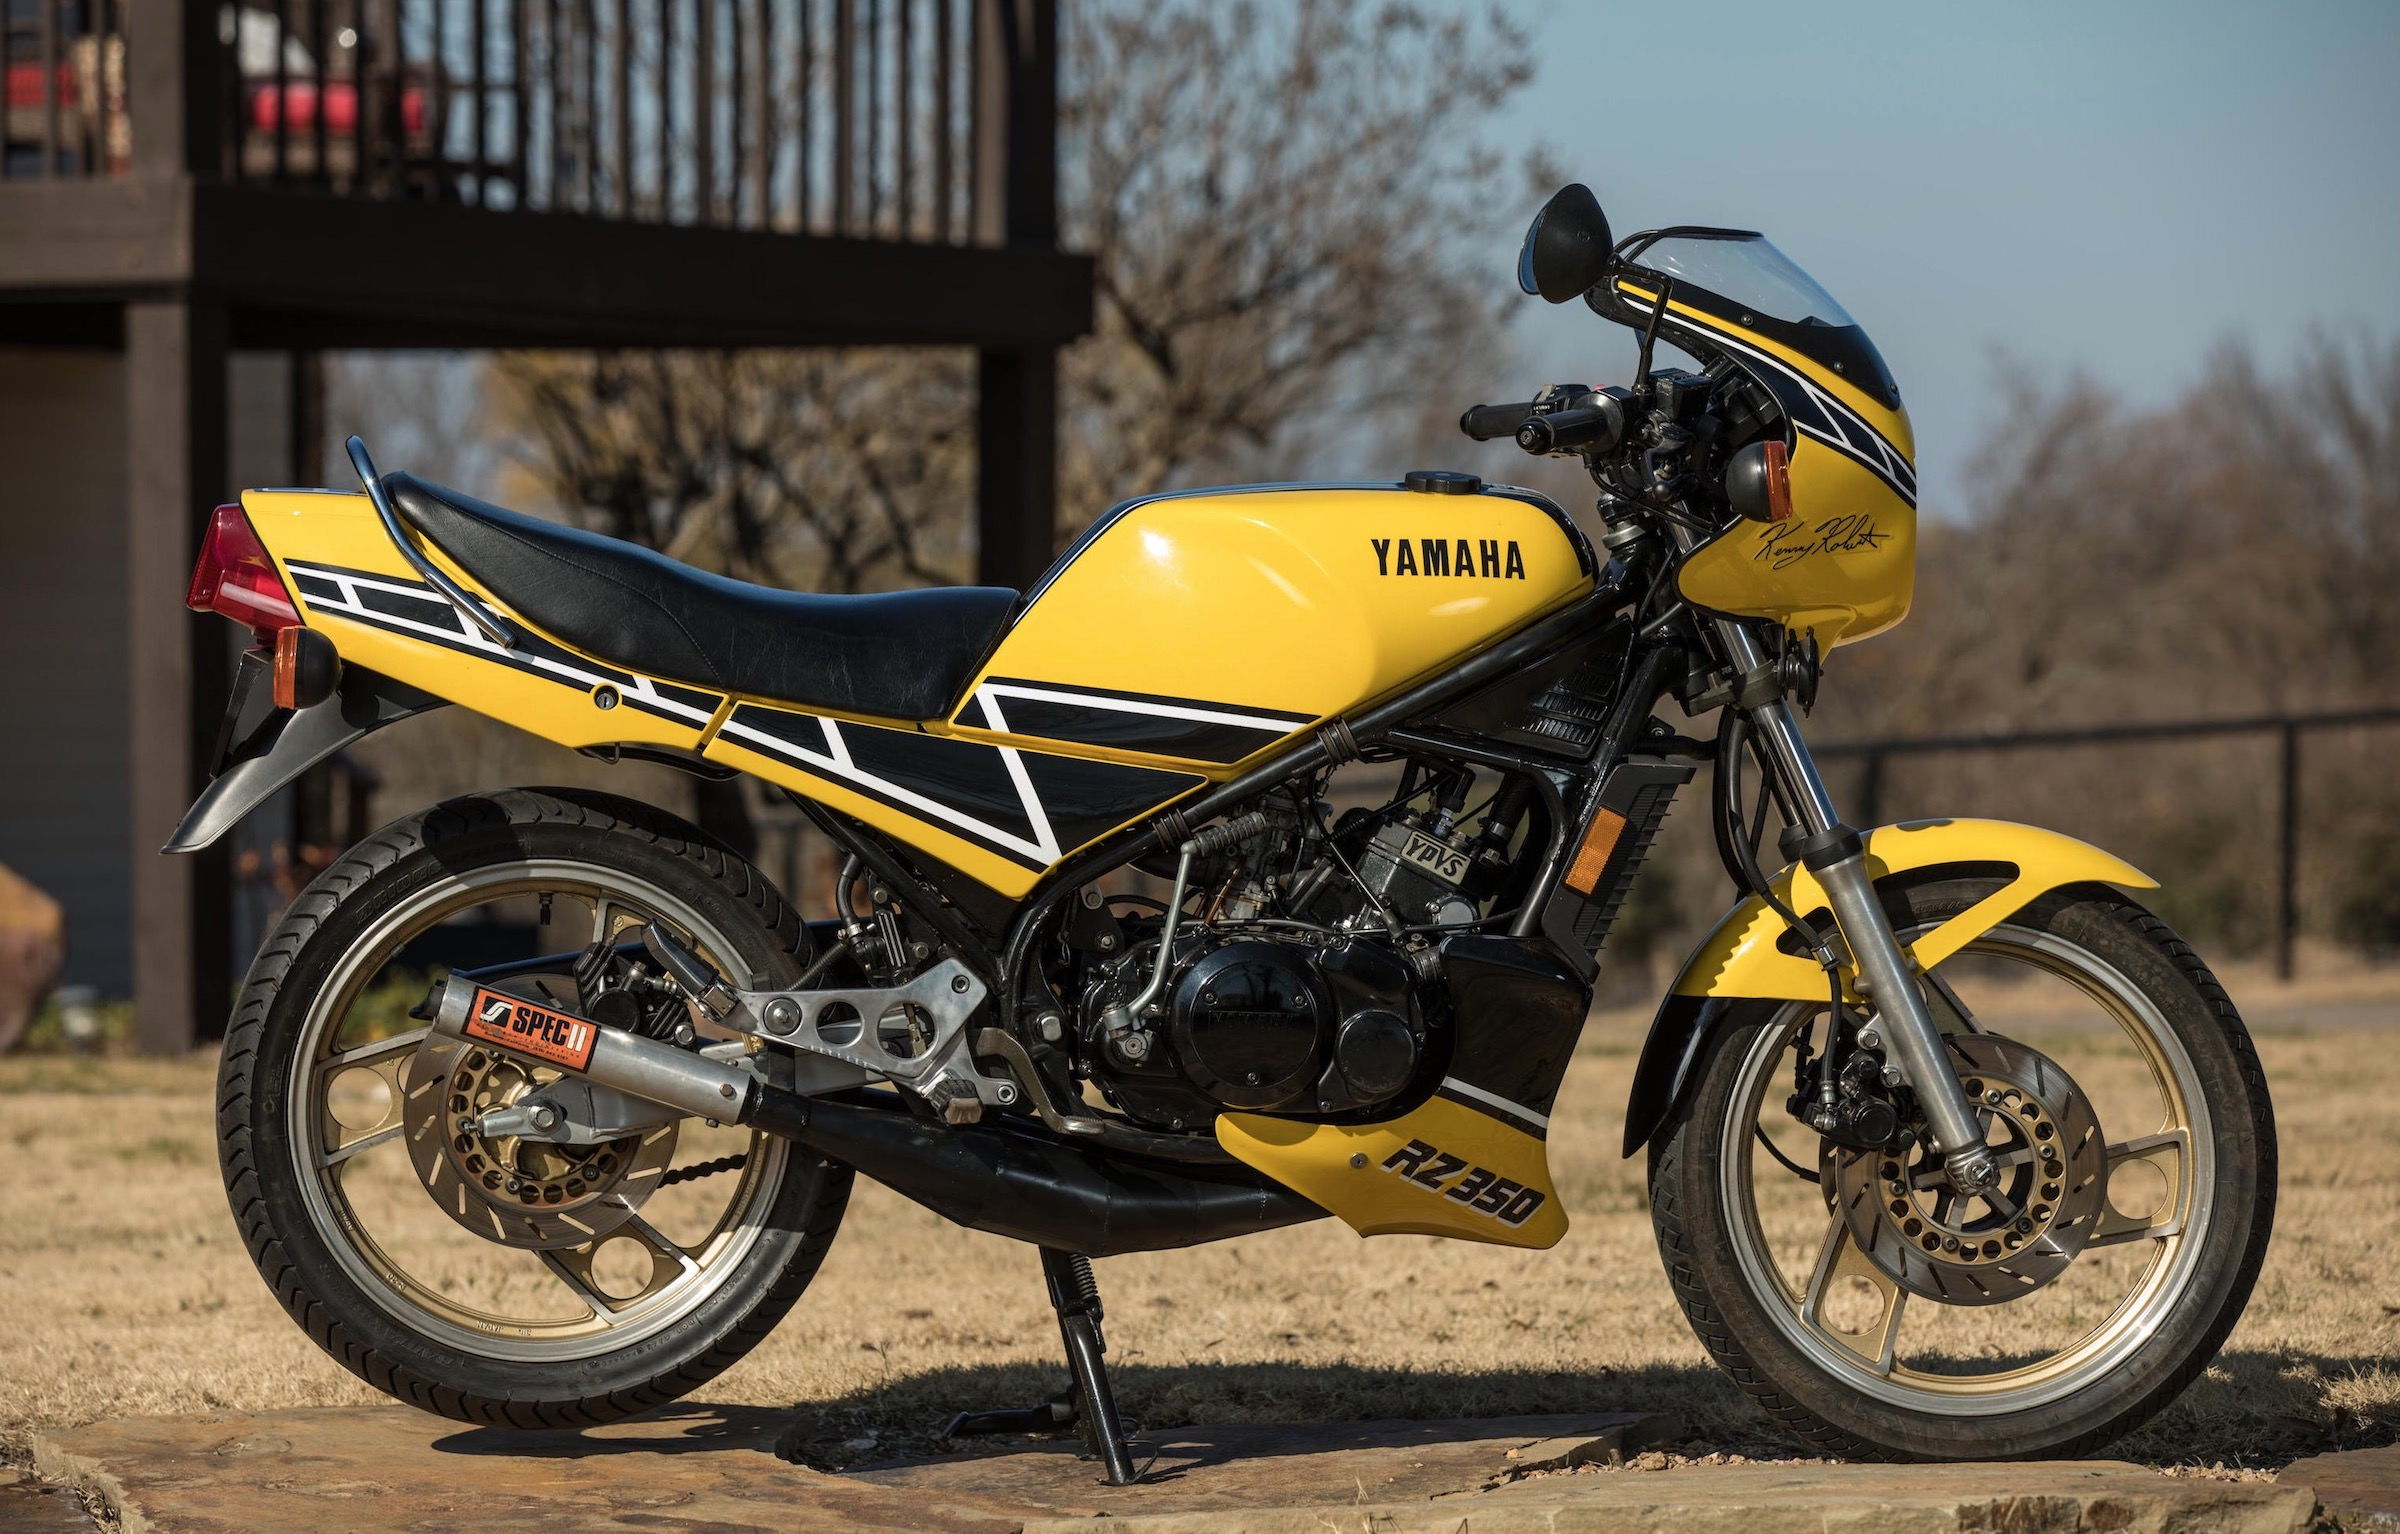 The Last (Legal) Two-Stroke Street Bike Sold In The USA